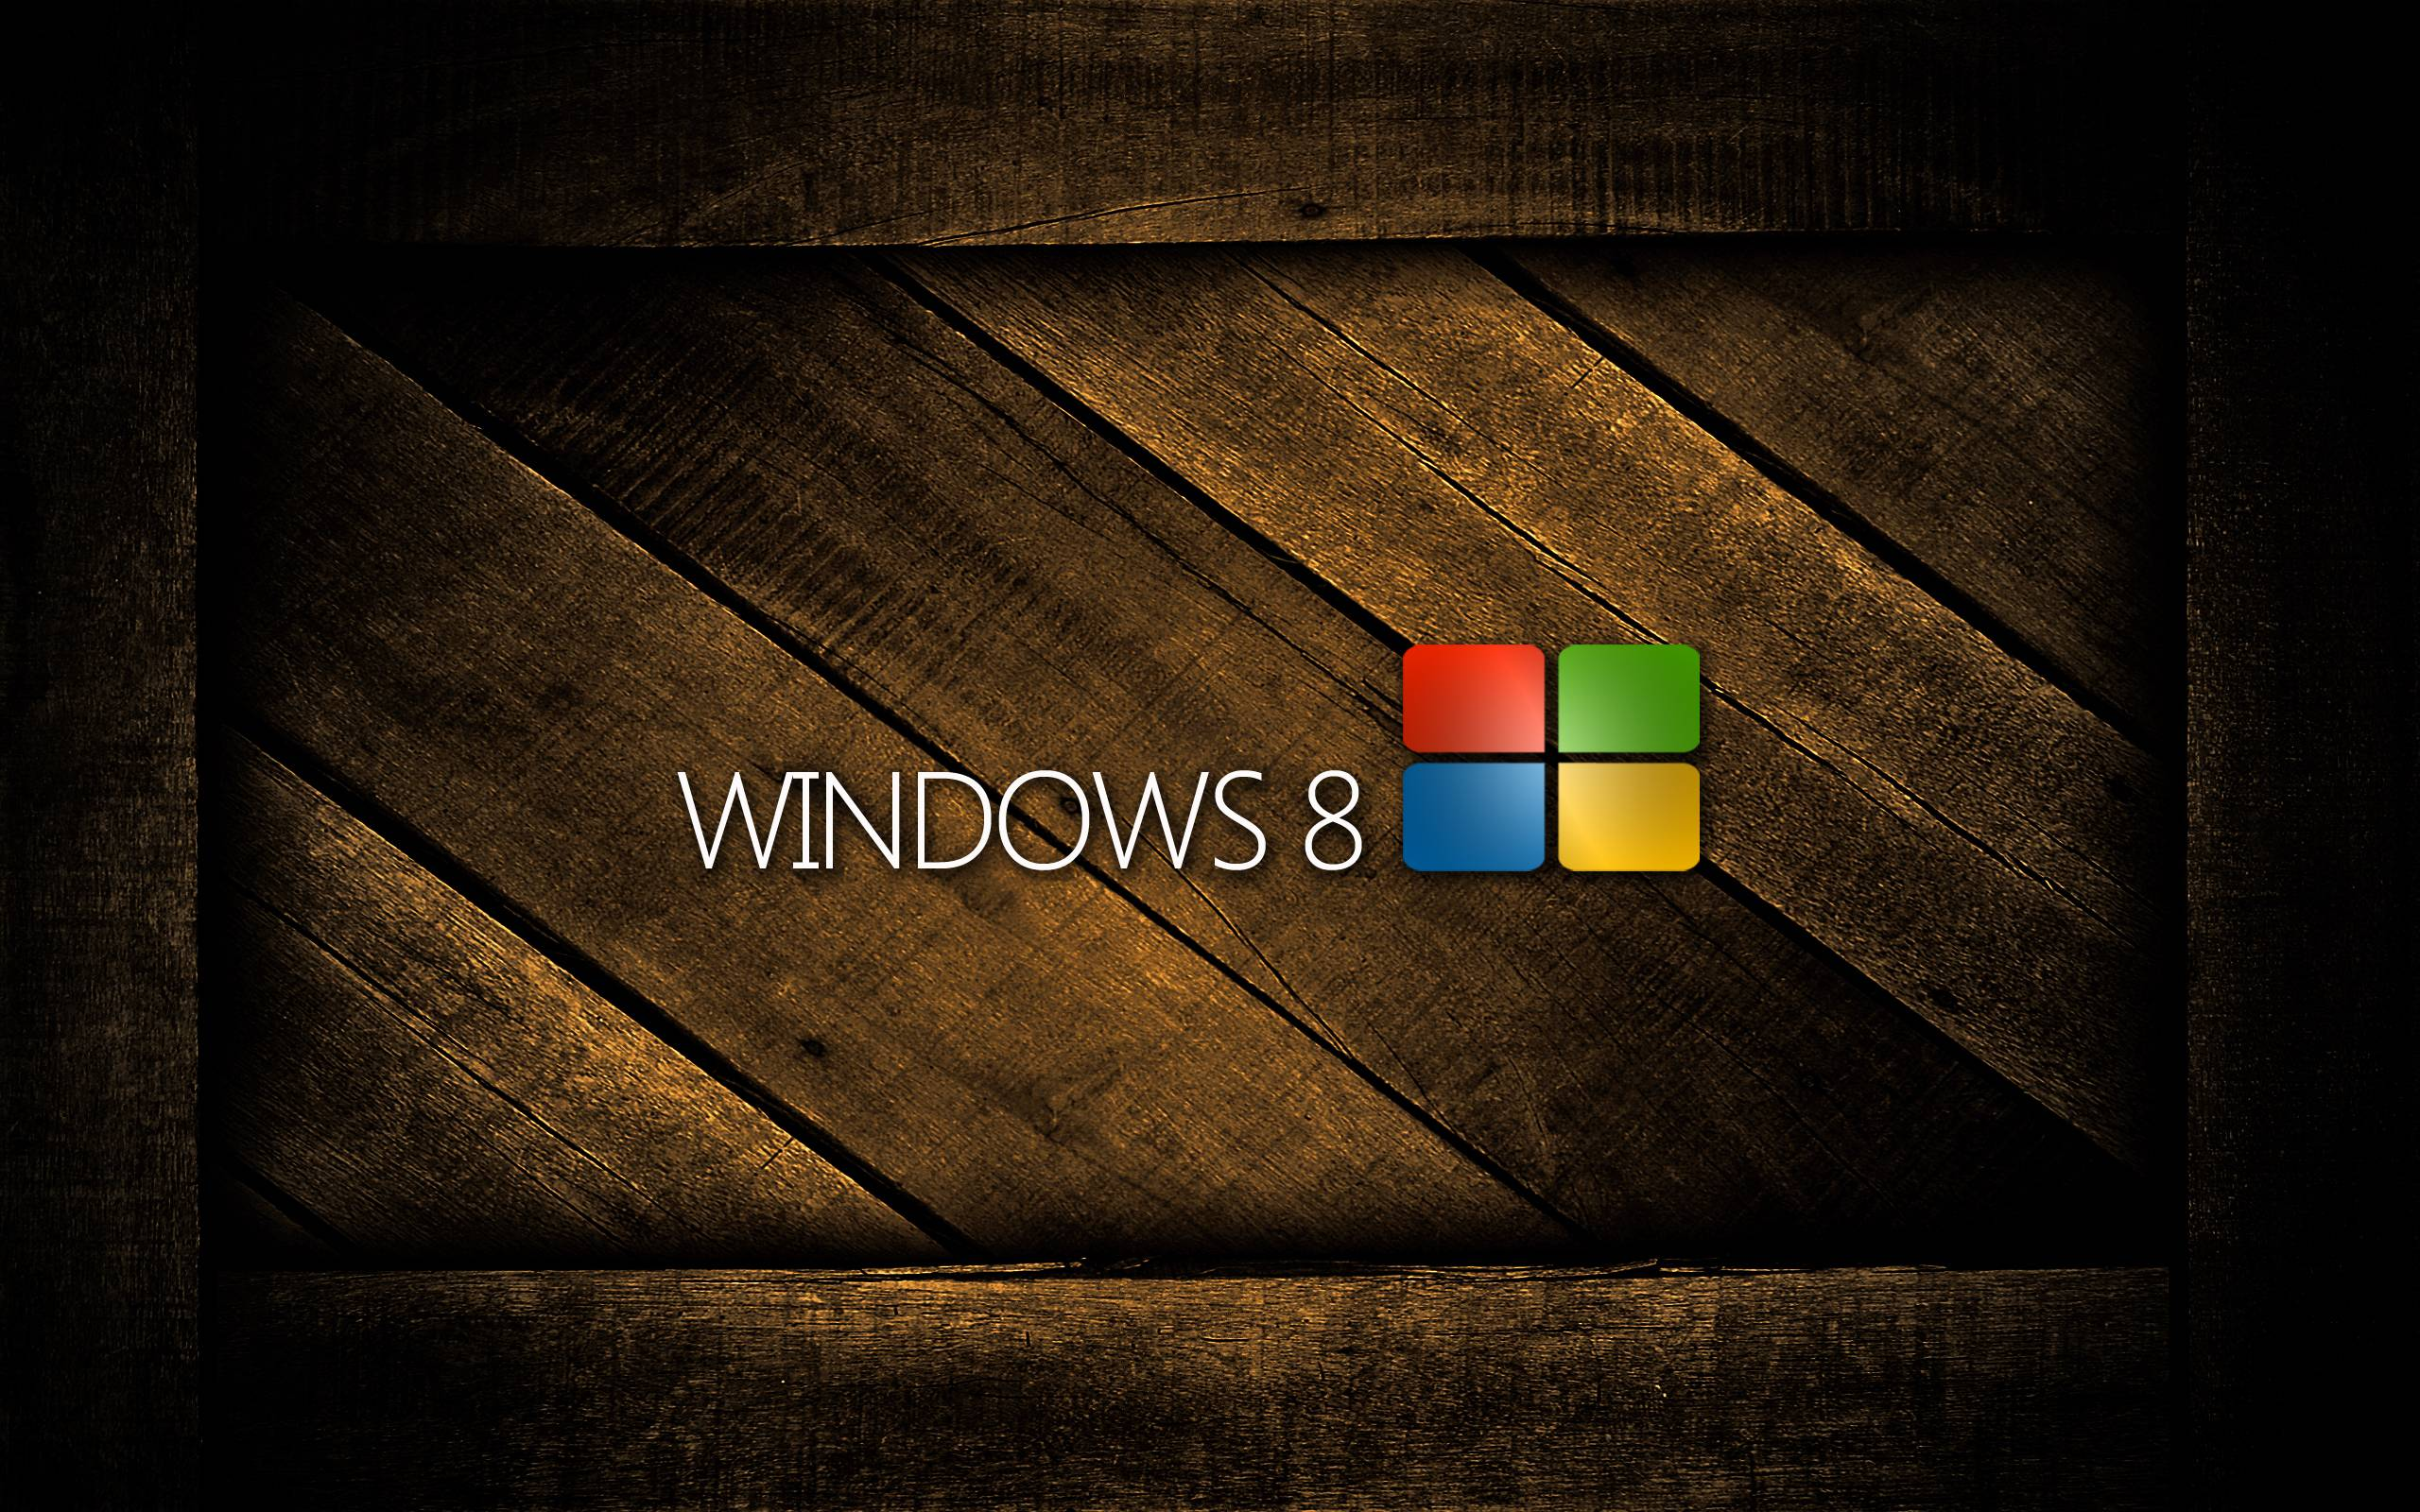 wallpapers for wallpapers hd 3d windows 8 a· download